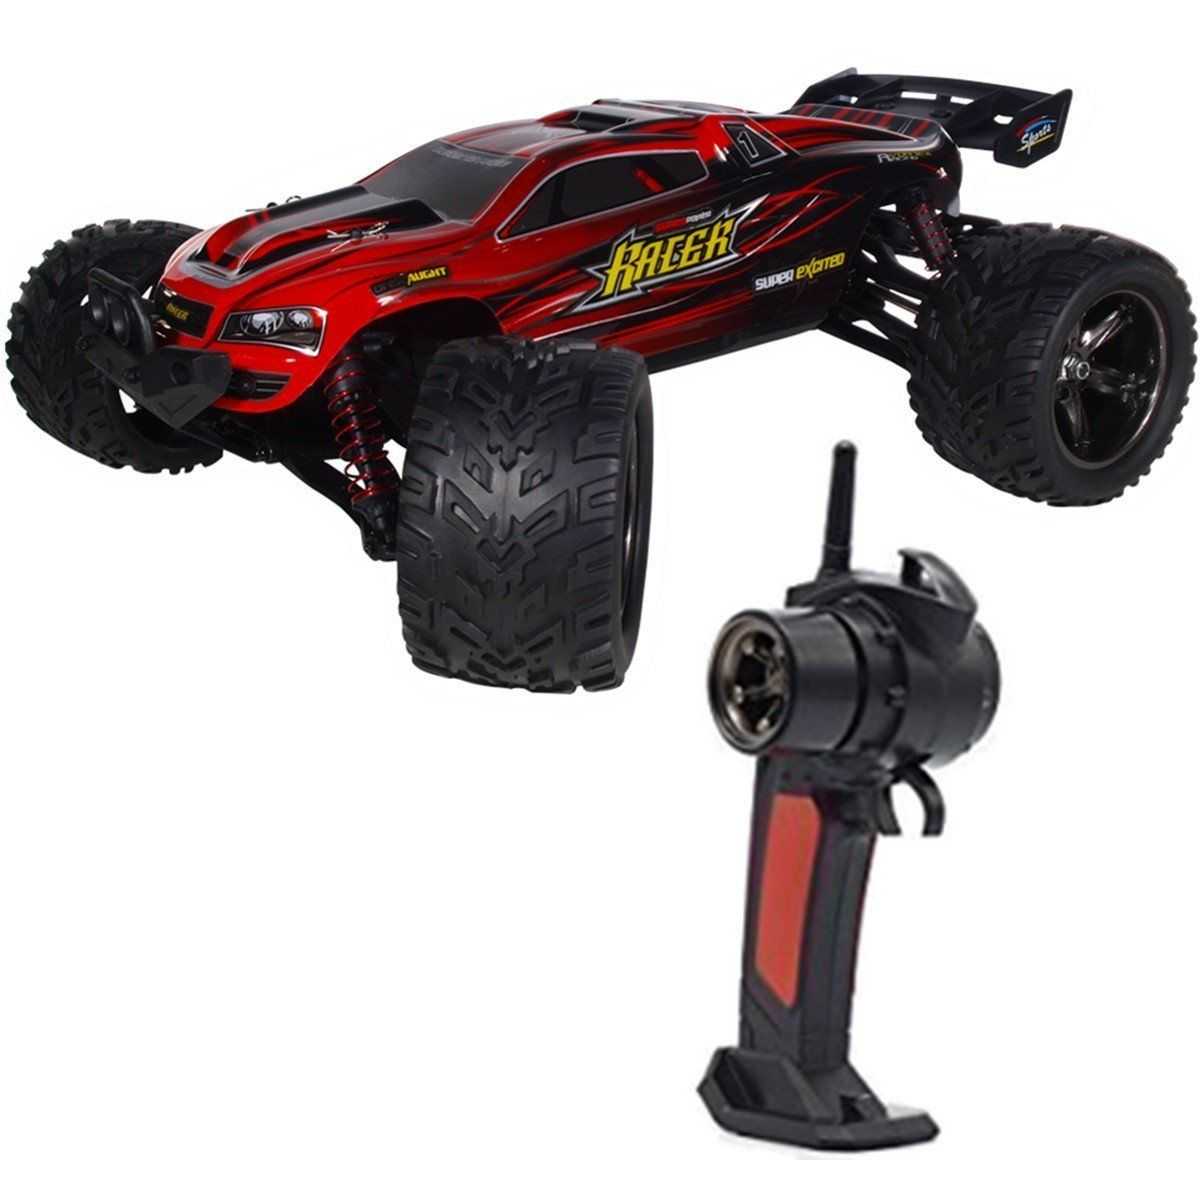 Best rc car for 8 to 11 year old 2017 buzzparent